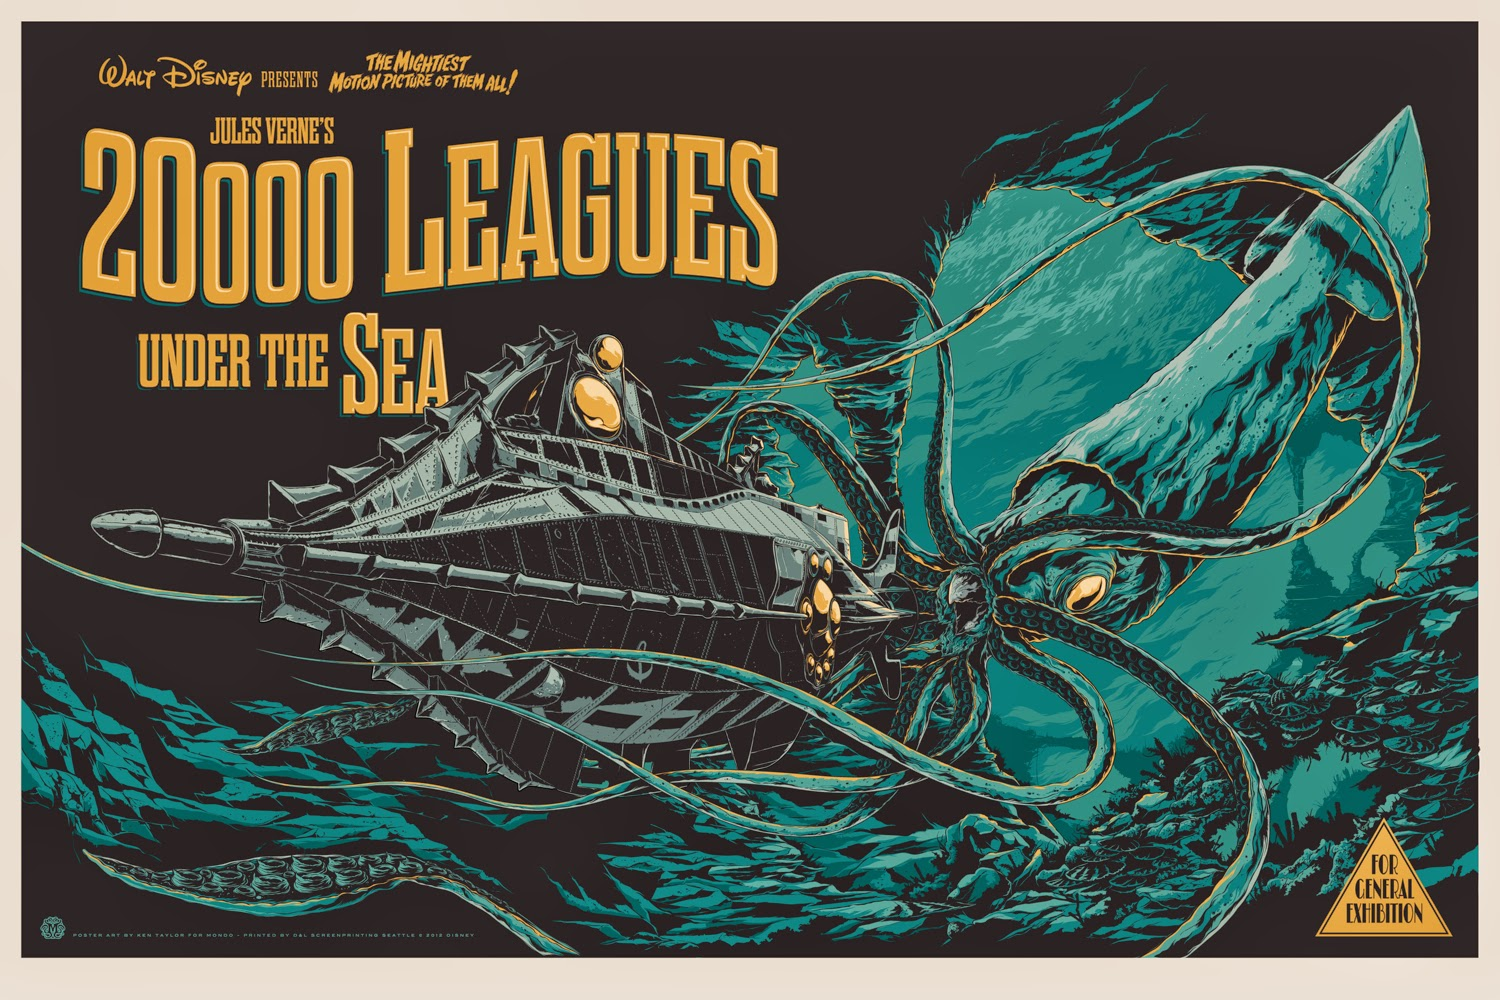 Disney poster of 20,000 leagues under the sea